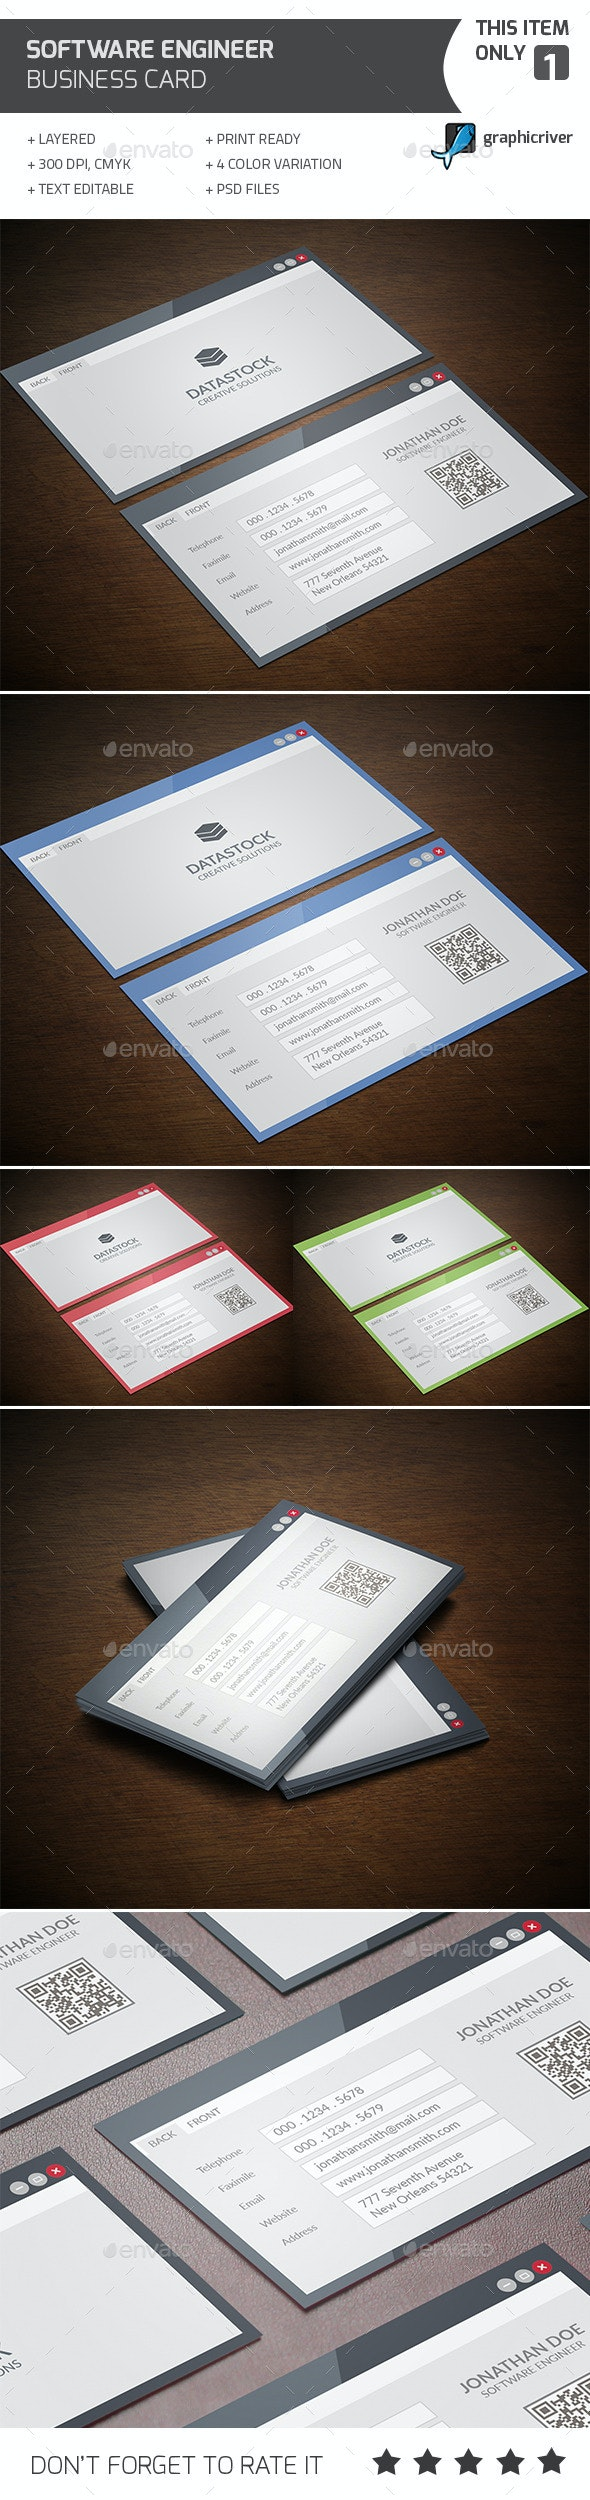 Software Engineer Business Card - Industry Specific Business Cards